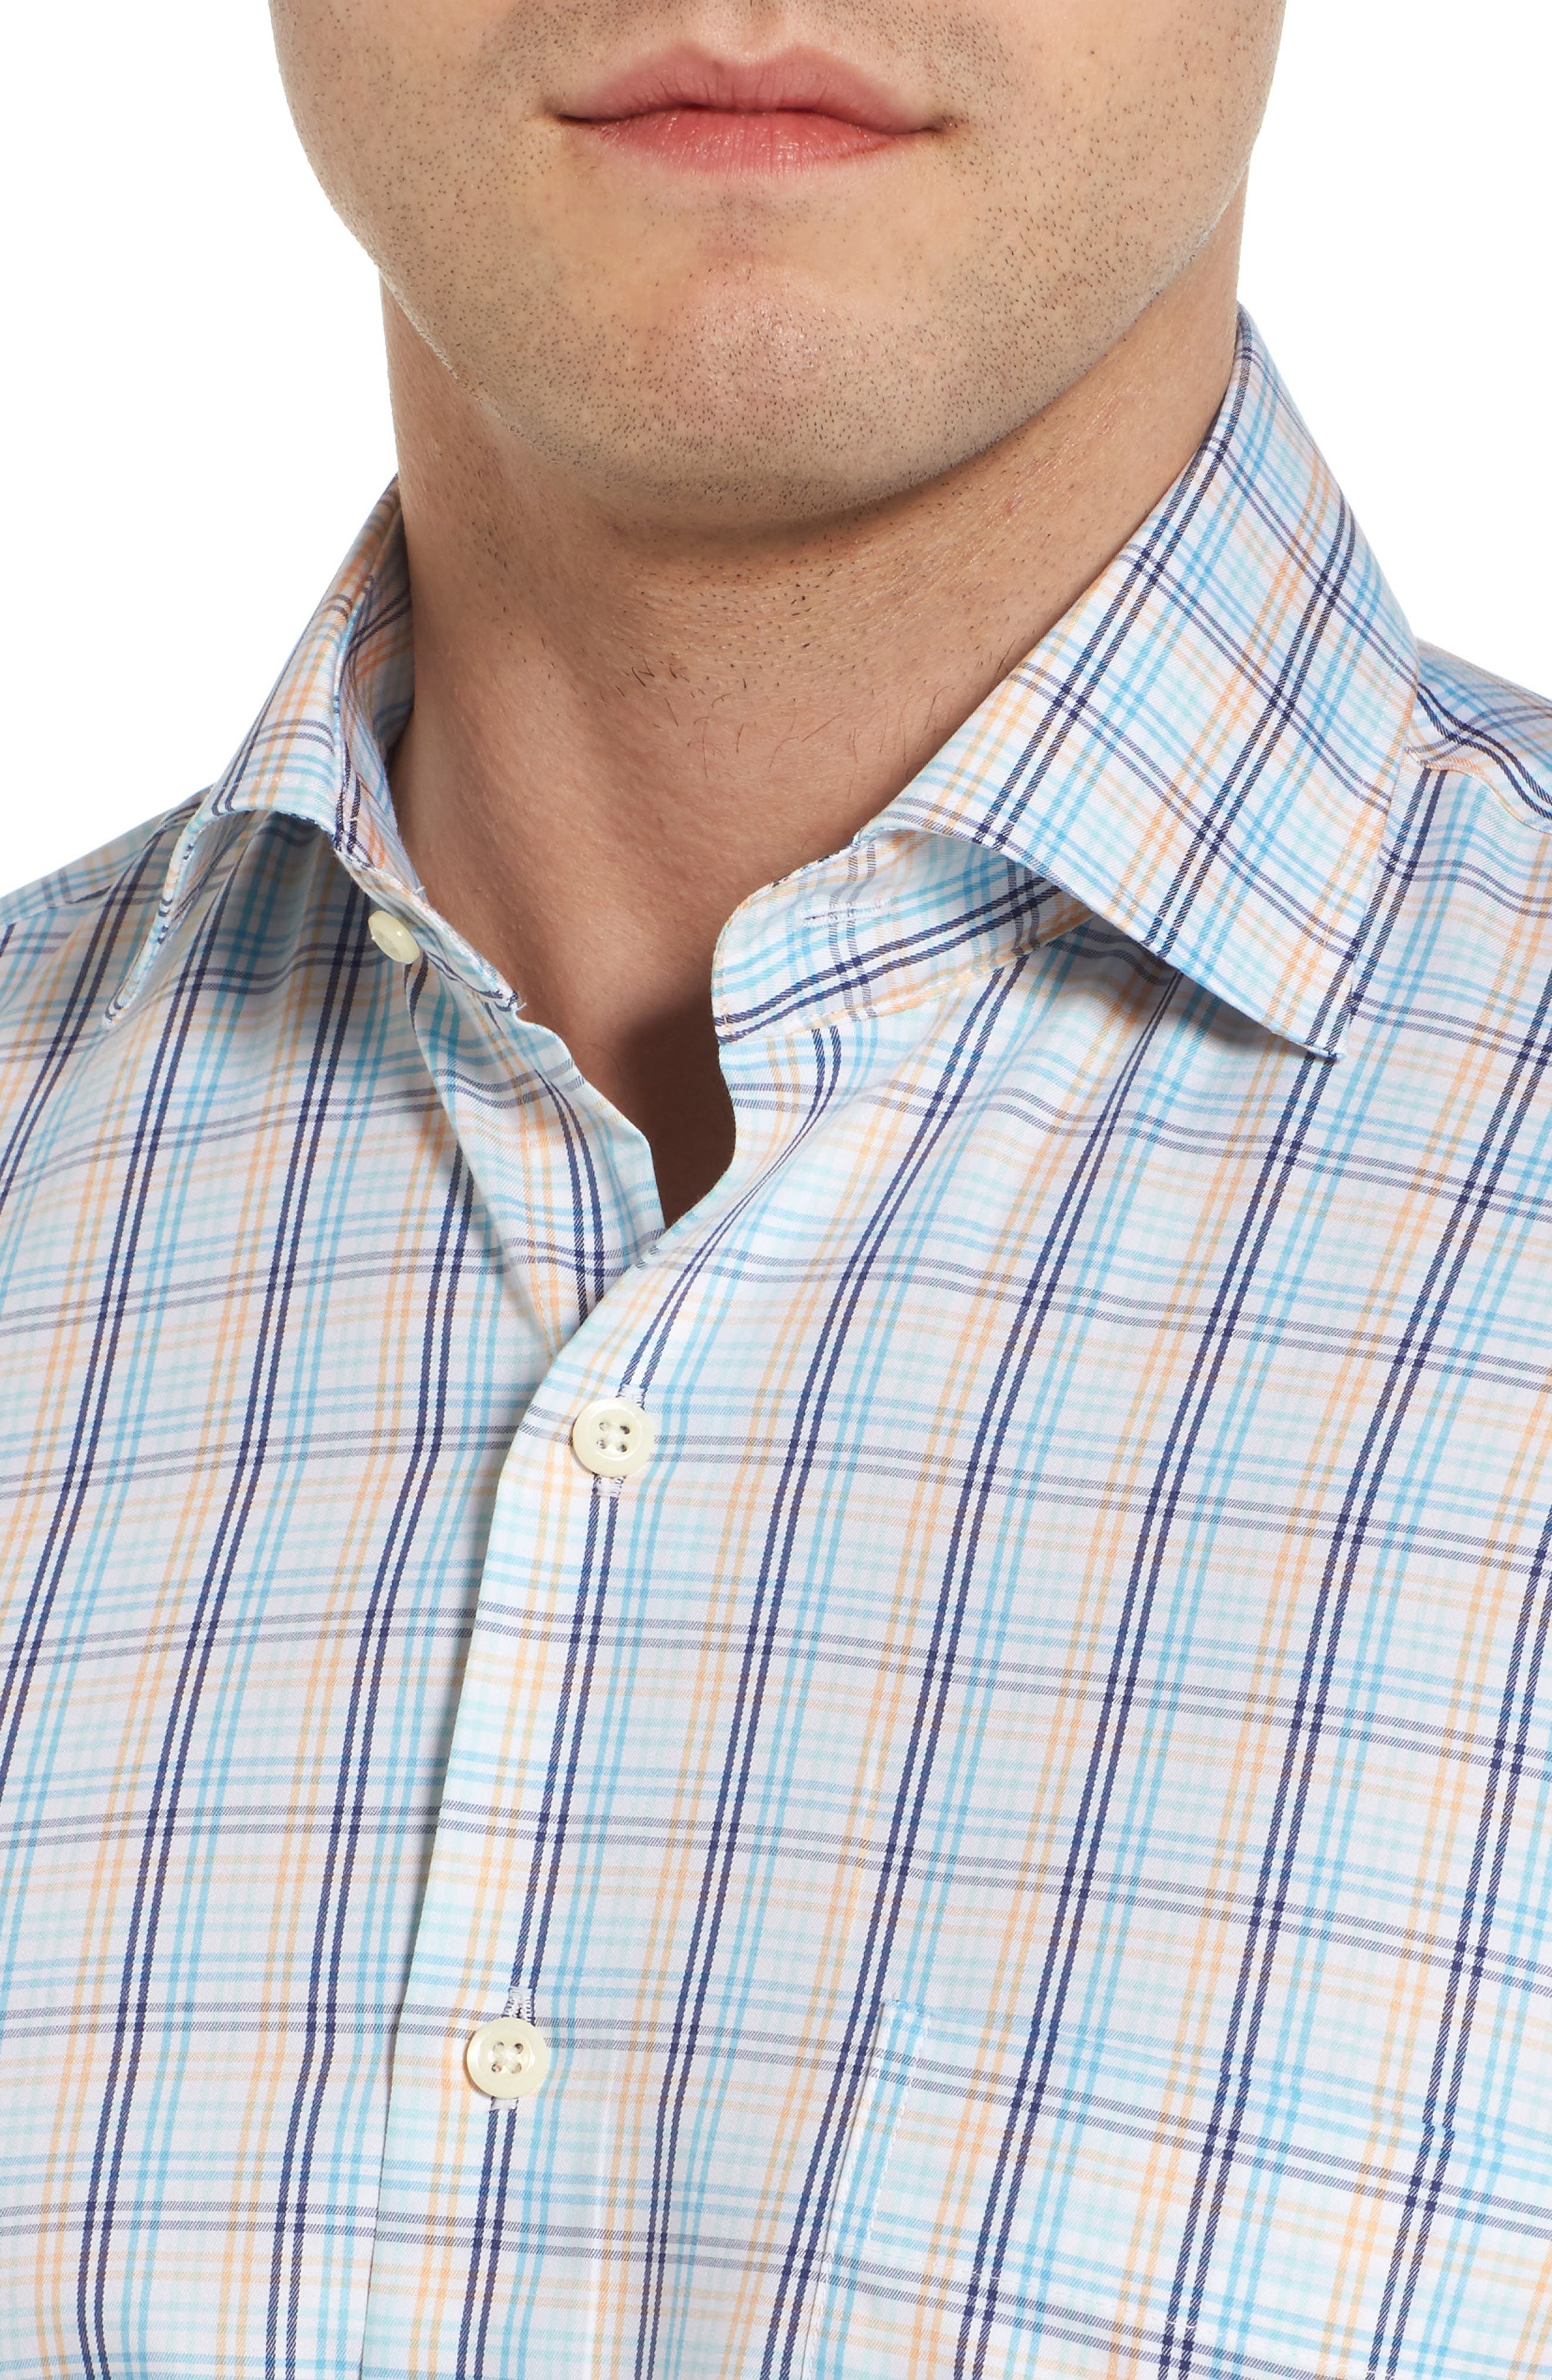 Crown Soft Daybreak Regular Fit Check Sport Shirt,                             Alternate thumbnail 4, color,                             Dreamsicle